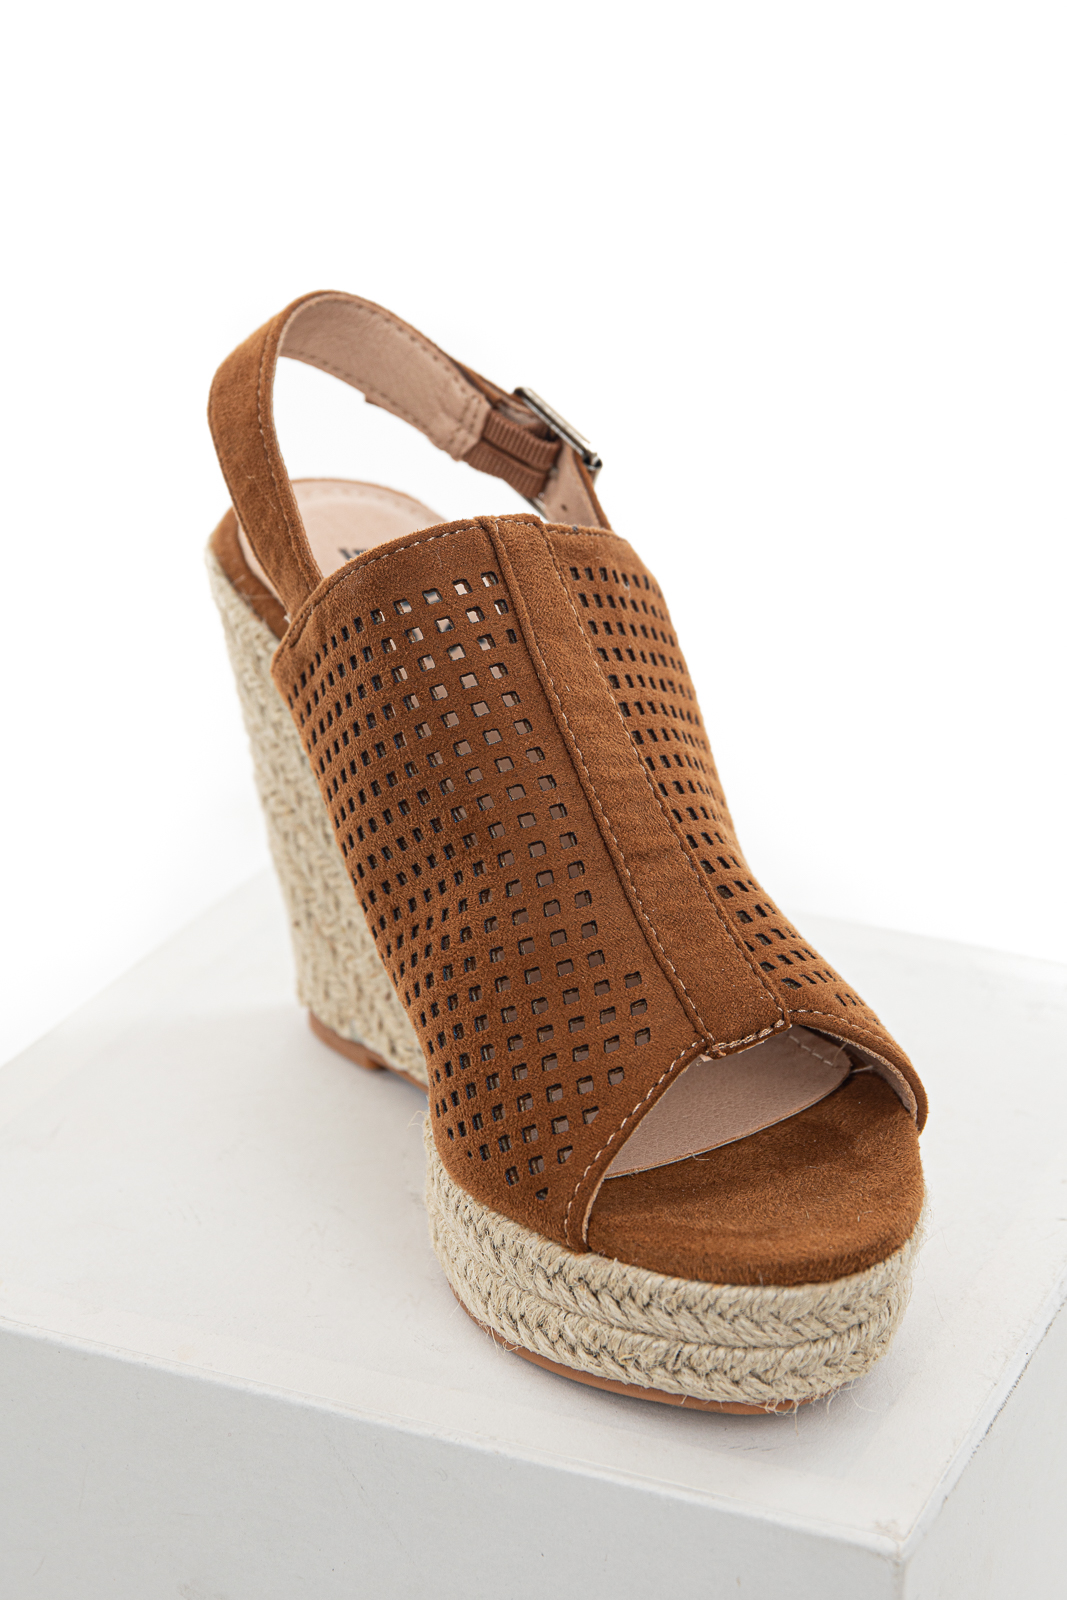 Cognac Square Laser Cut Out Espadrille Sling Back Wedges